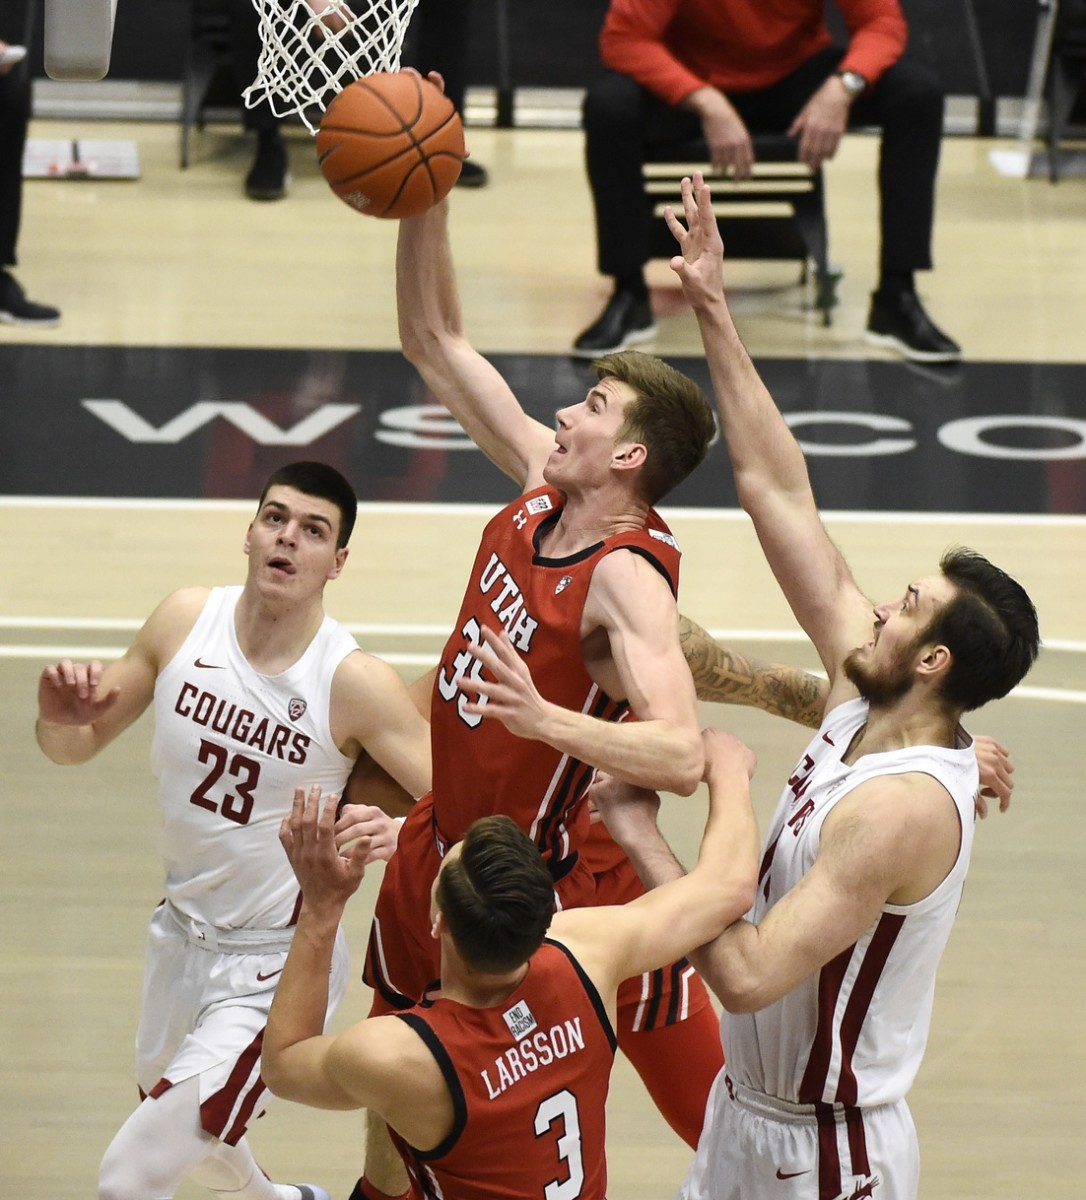 Jan 21, 2021; Pullman, Washington, USA; Utah Utes center Branden Carlson (35) puts up a shot against Washington State Cougars center Volodymyr Markovetskyy (15) during the first half of a Pac-12 men s basketball game at Friel Court at Beasley Coliseum.